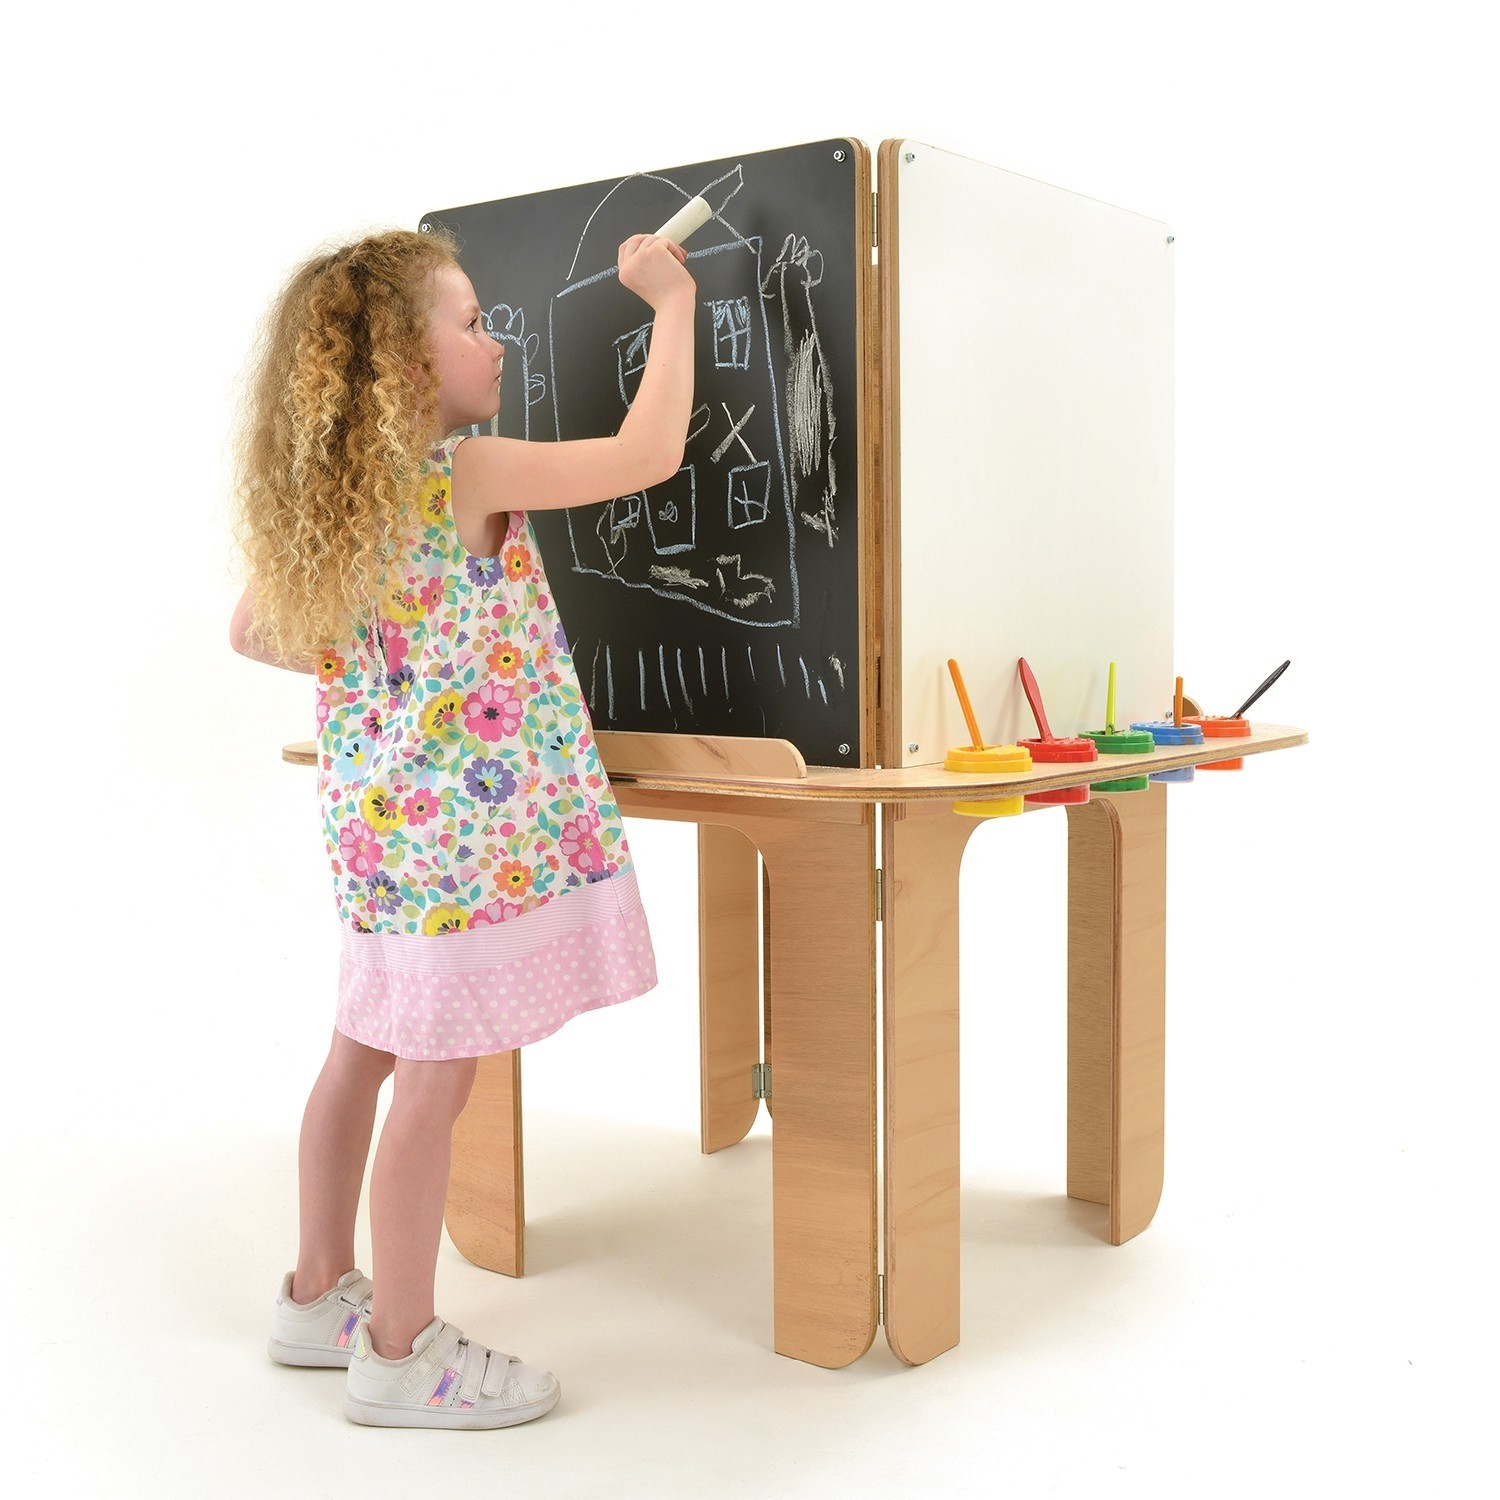 kids arts and craft 3 way easel